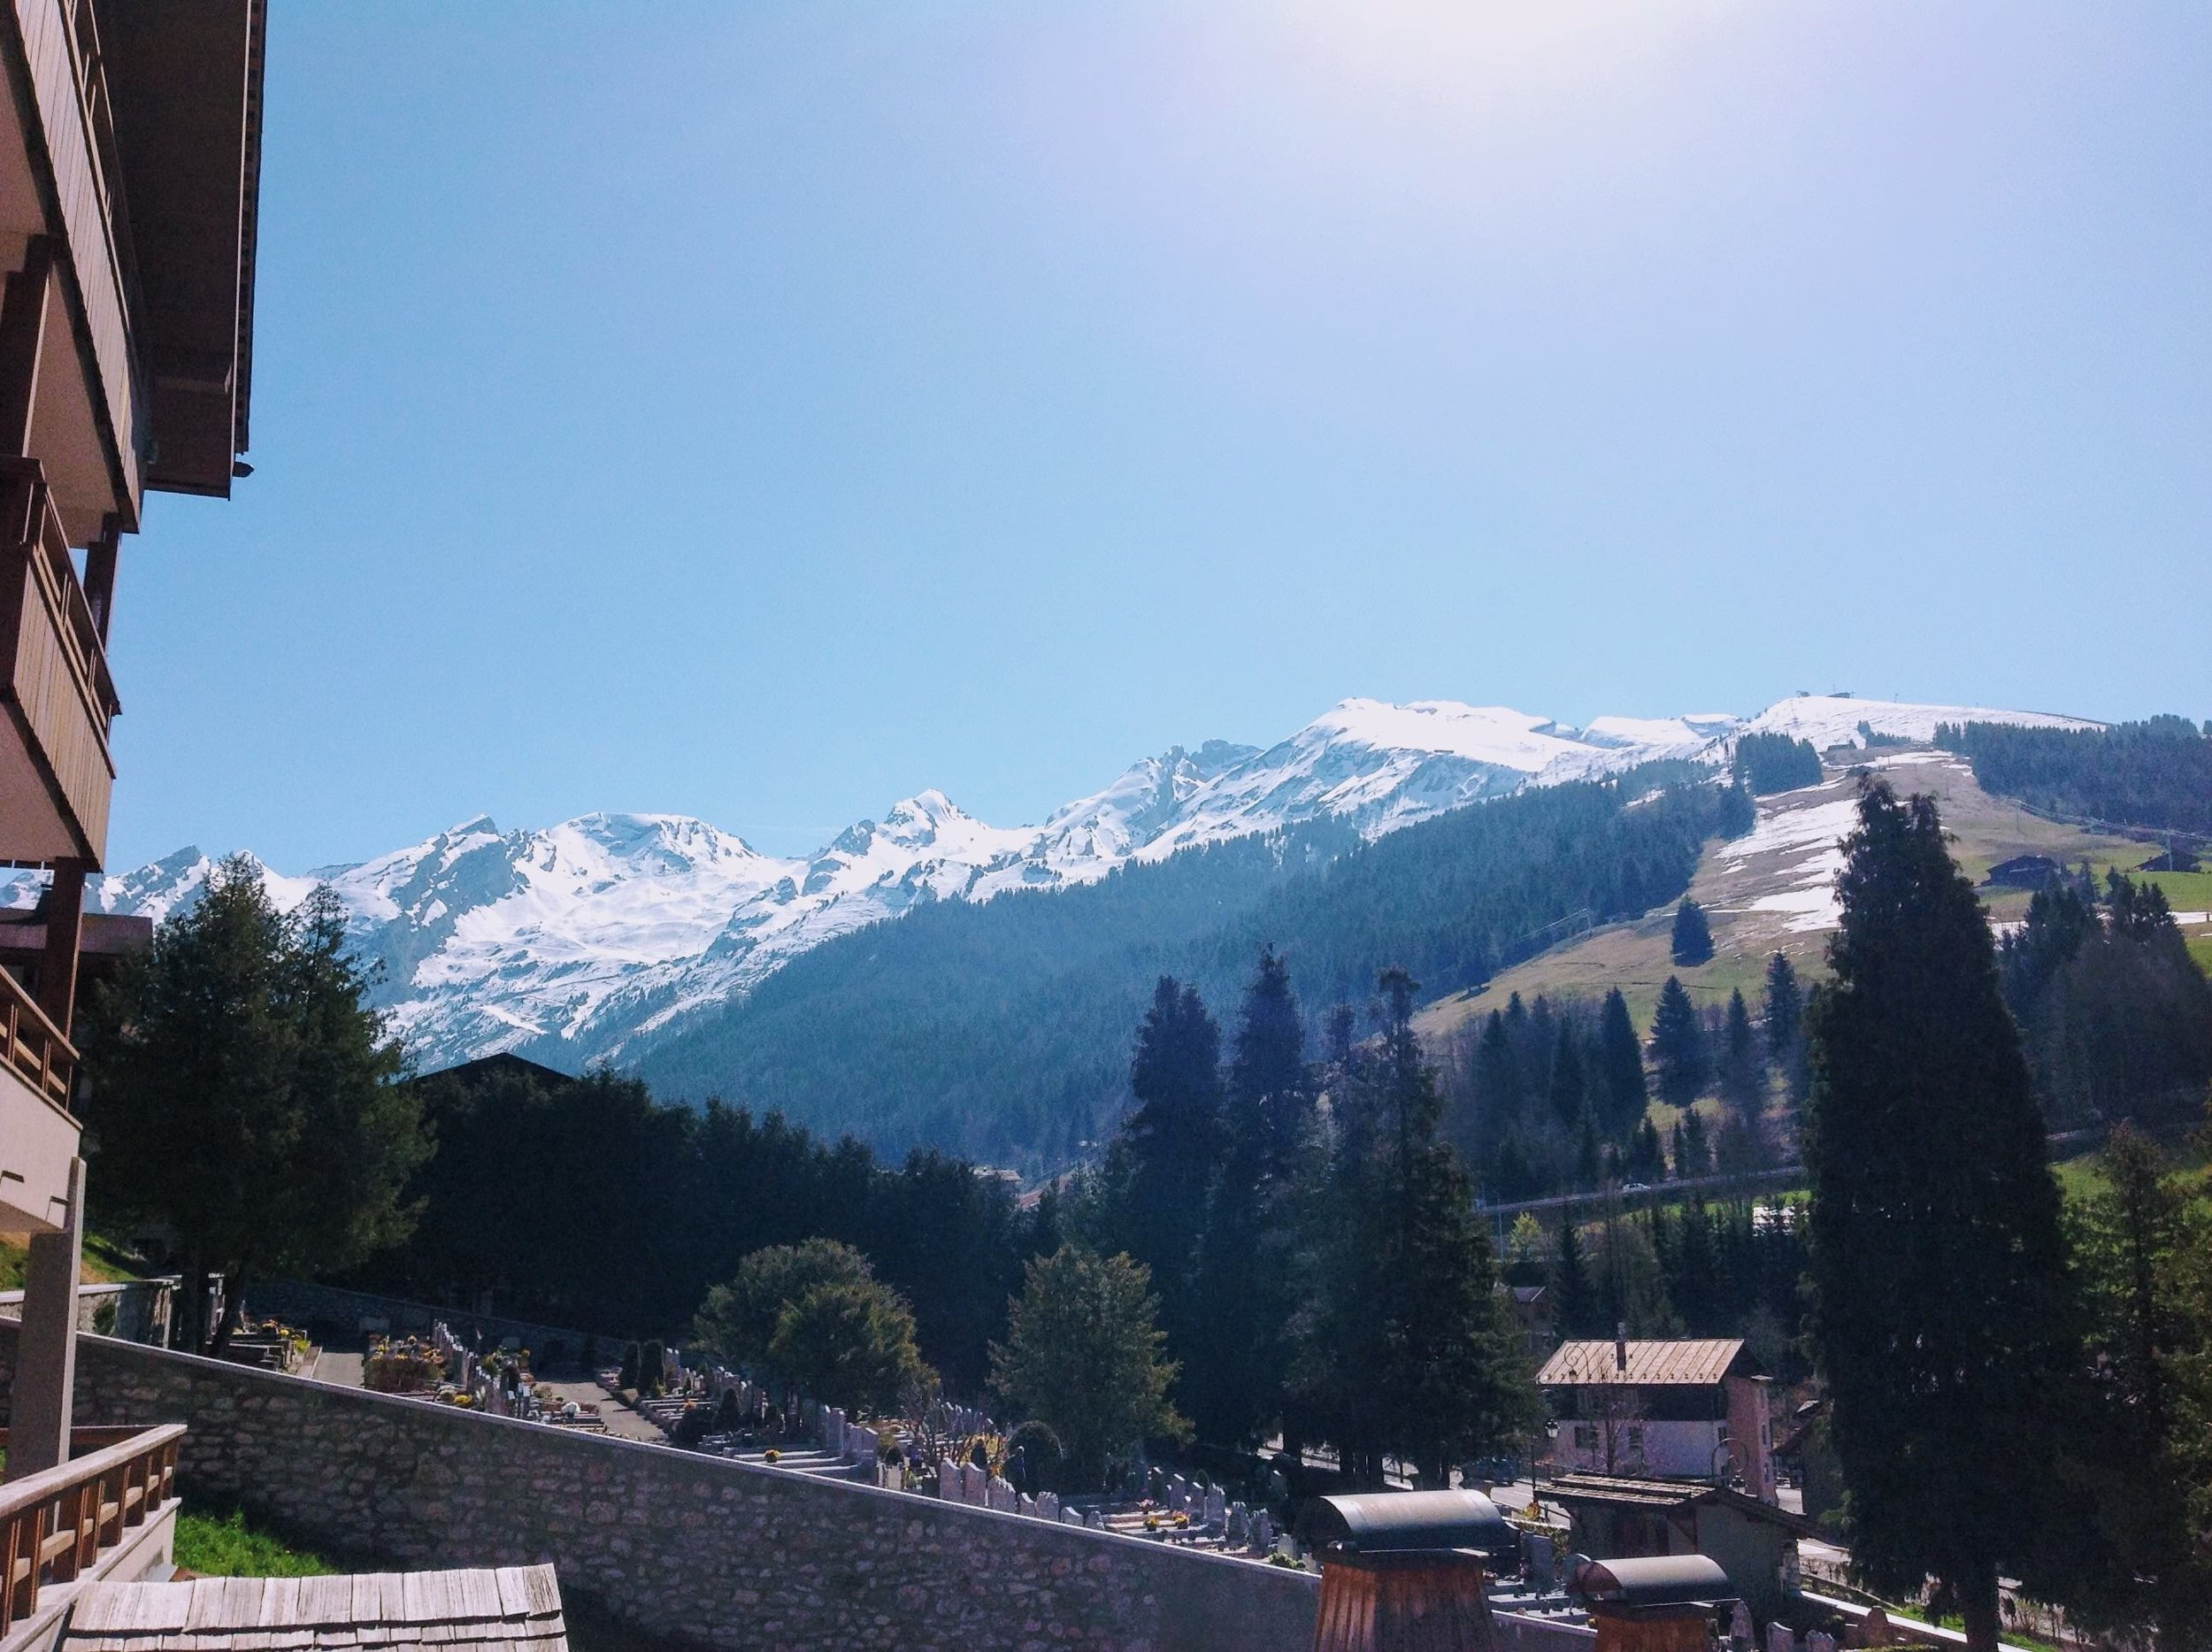 La Clusaz as seen from our balcony!